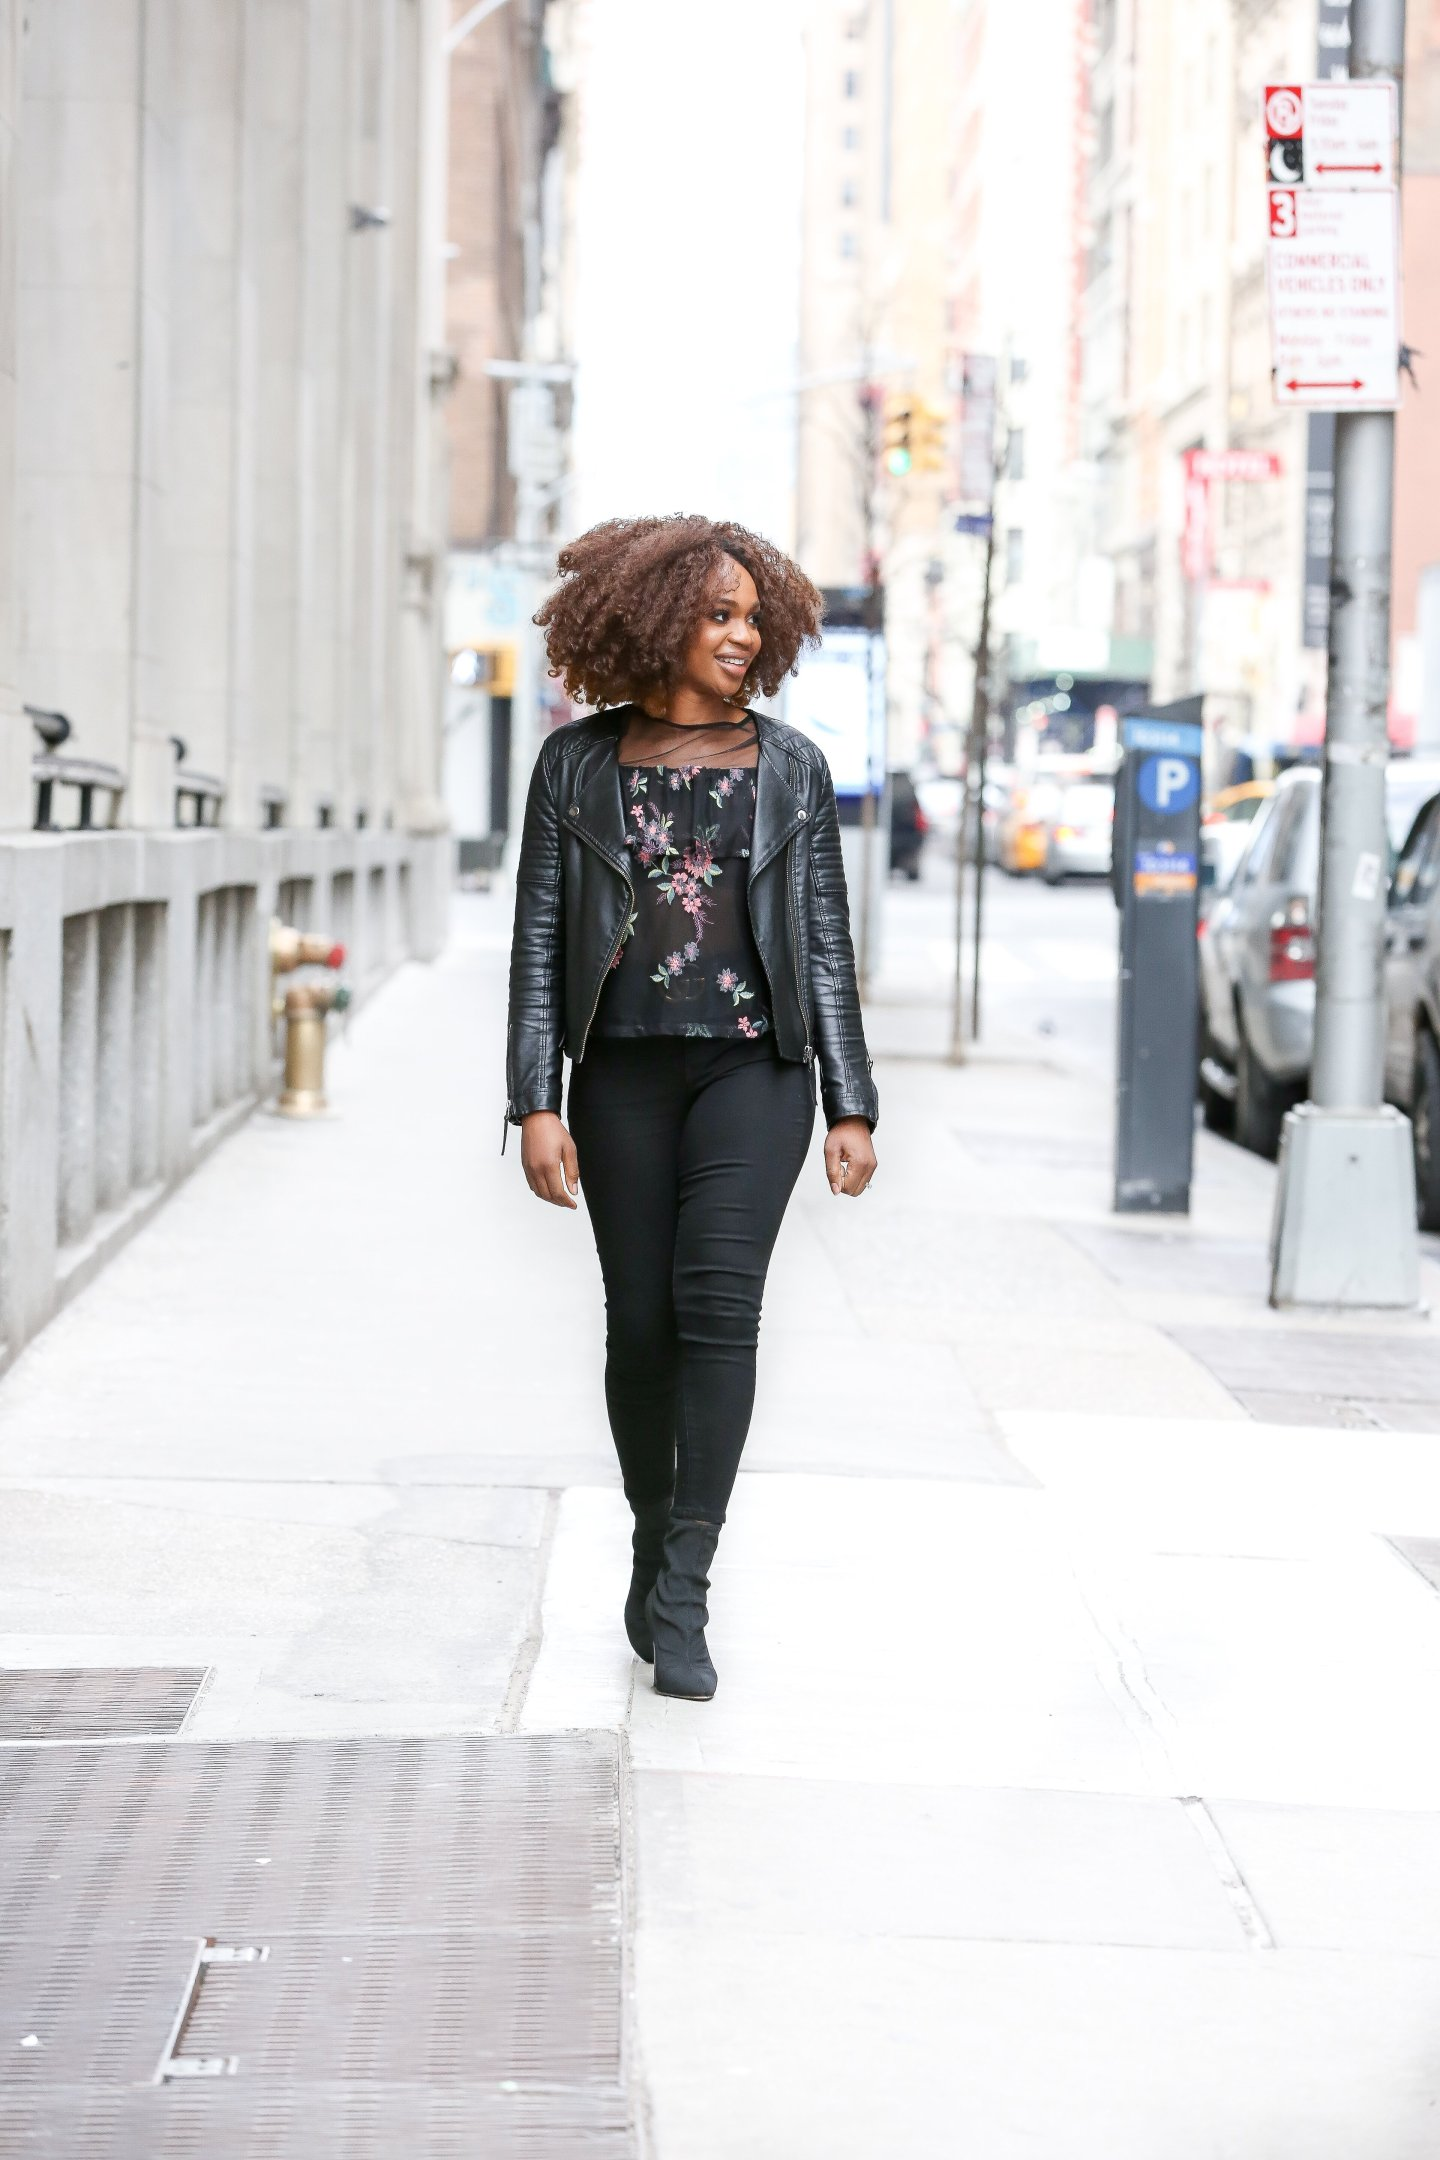 casual Valentine's Day outfit ideas, Galentines outfit idea, black and pink Valentine's Day outfit, black floral top and leather jacket, bb Dakota black floral rayna top